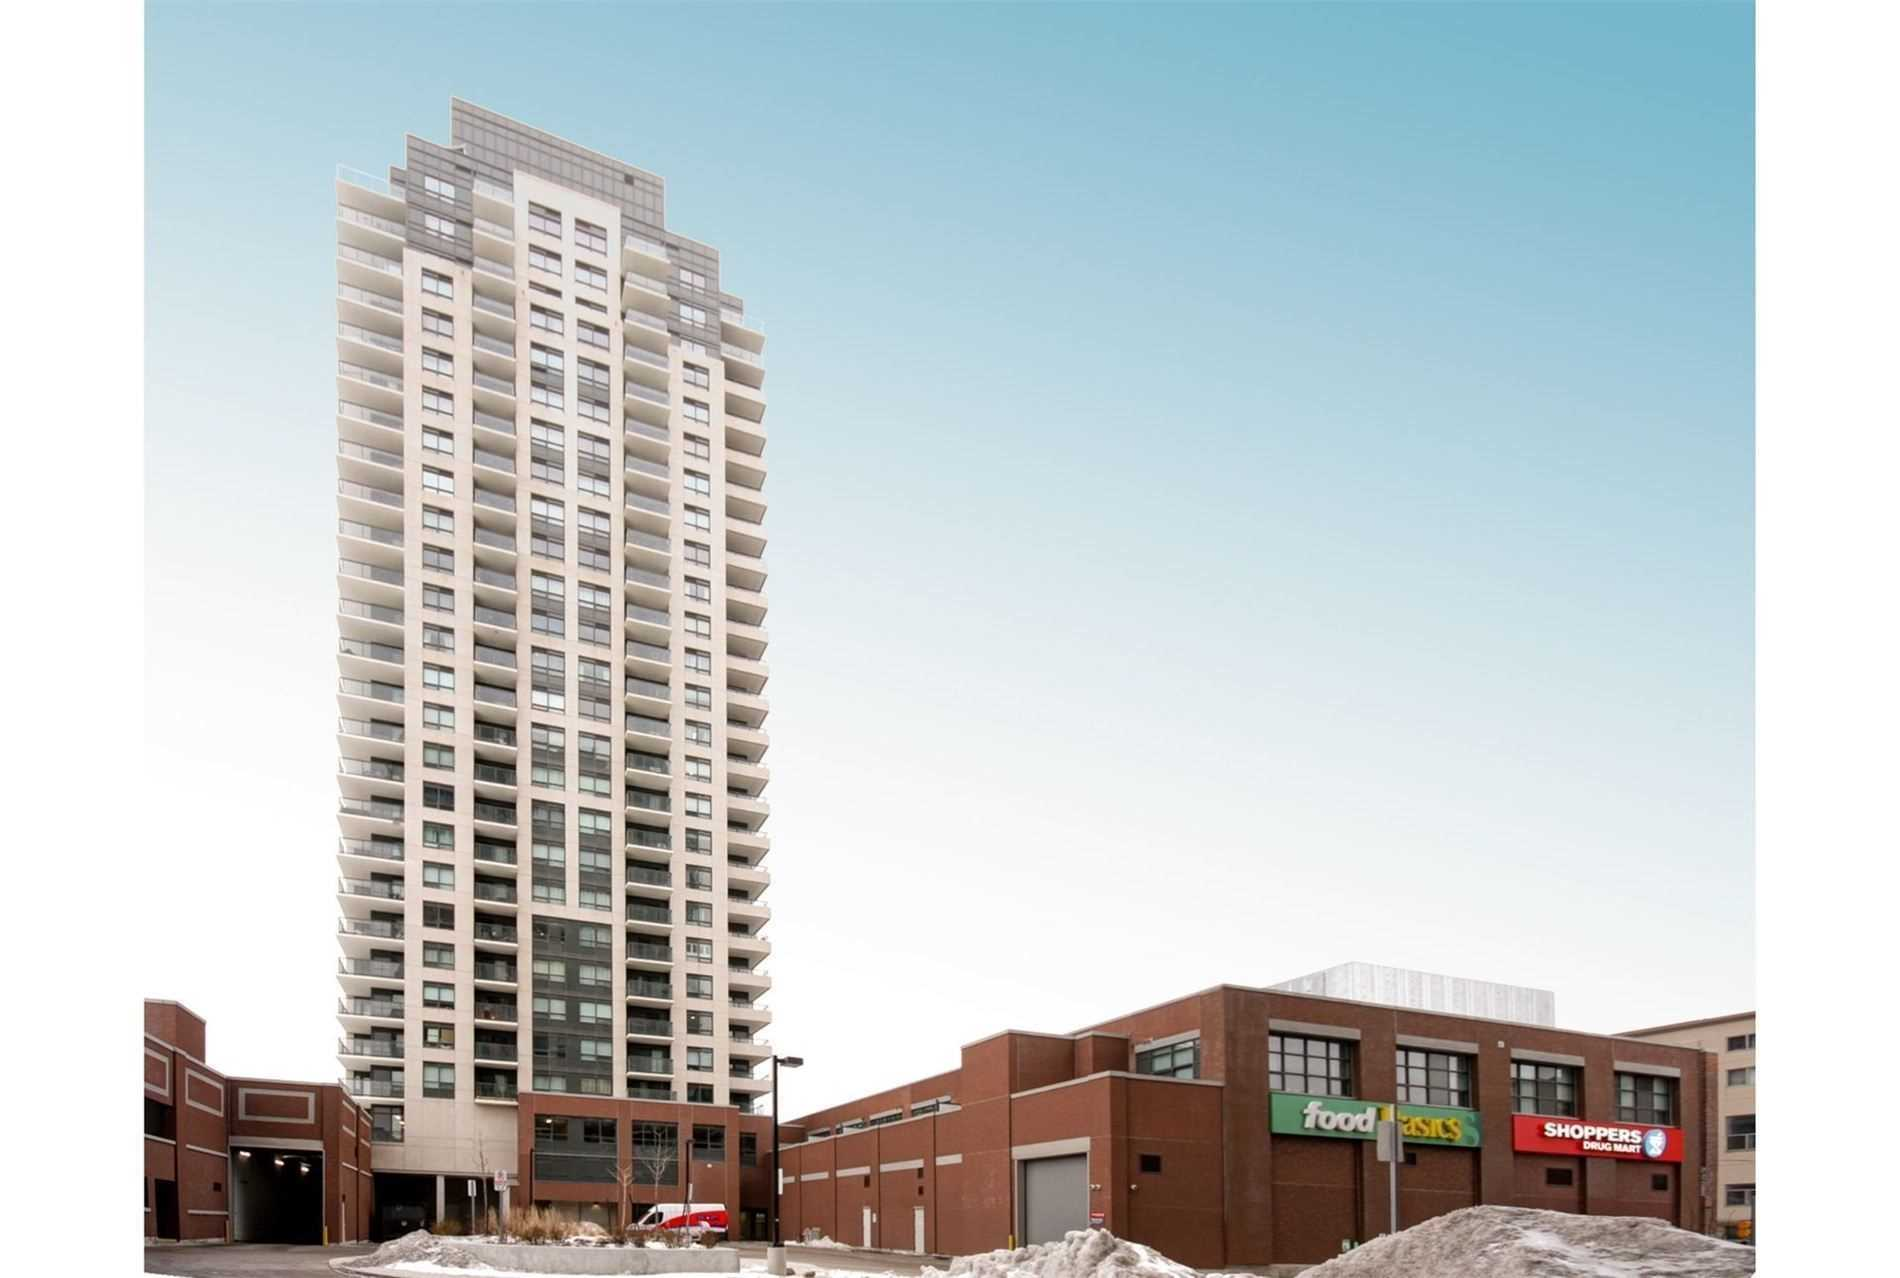 1410 Dupont St, Toronto, Ontario M6H2B1, 1 Bedroom Bedrooms, 5 Rooms Rooms,1 BathroomBathrooms,Condo Apt,For Sale,Dupont,W4923611